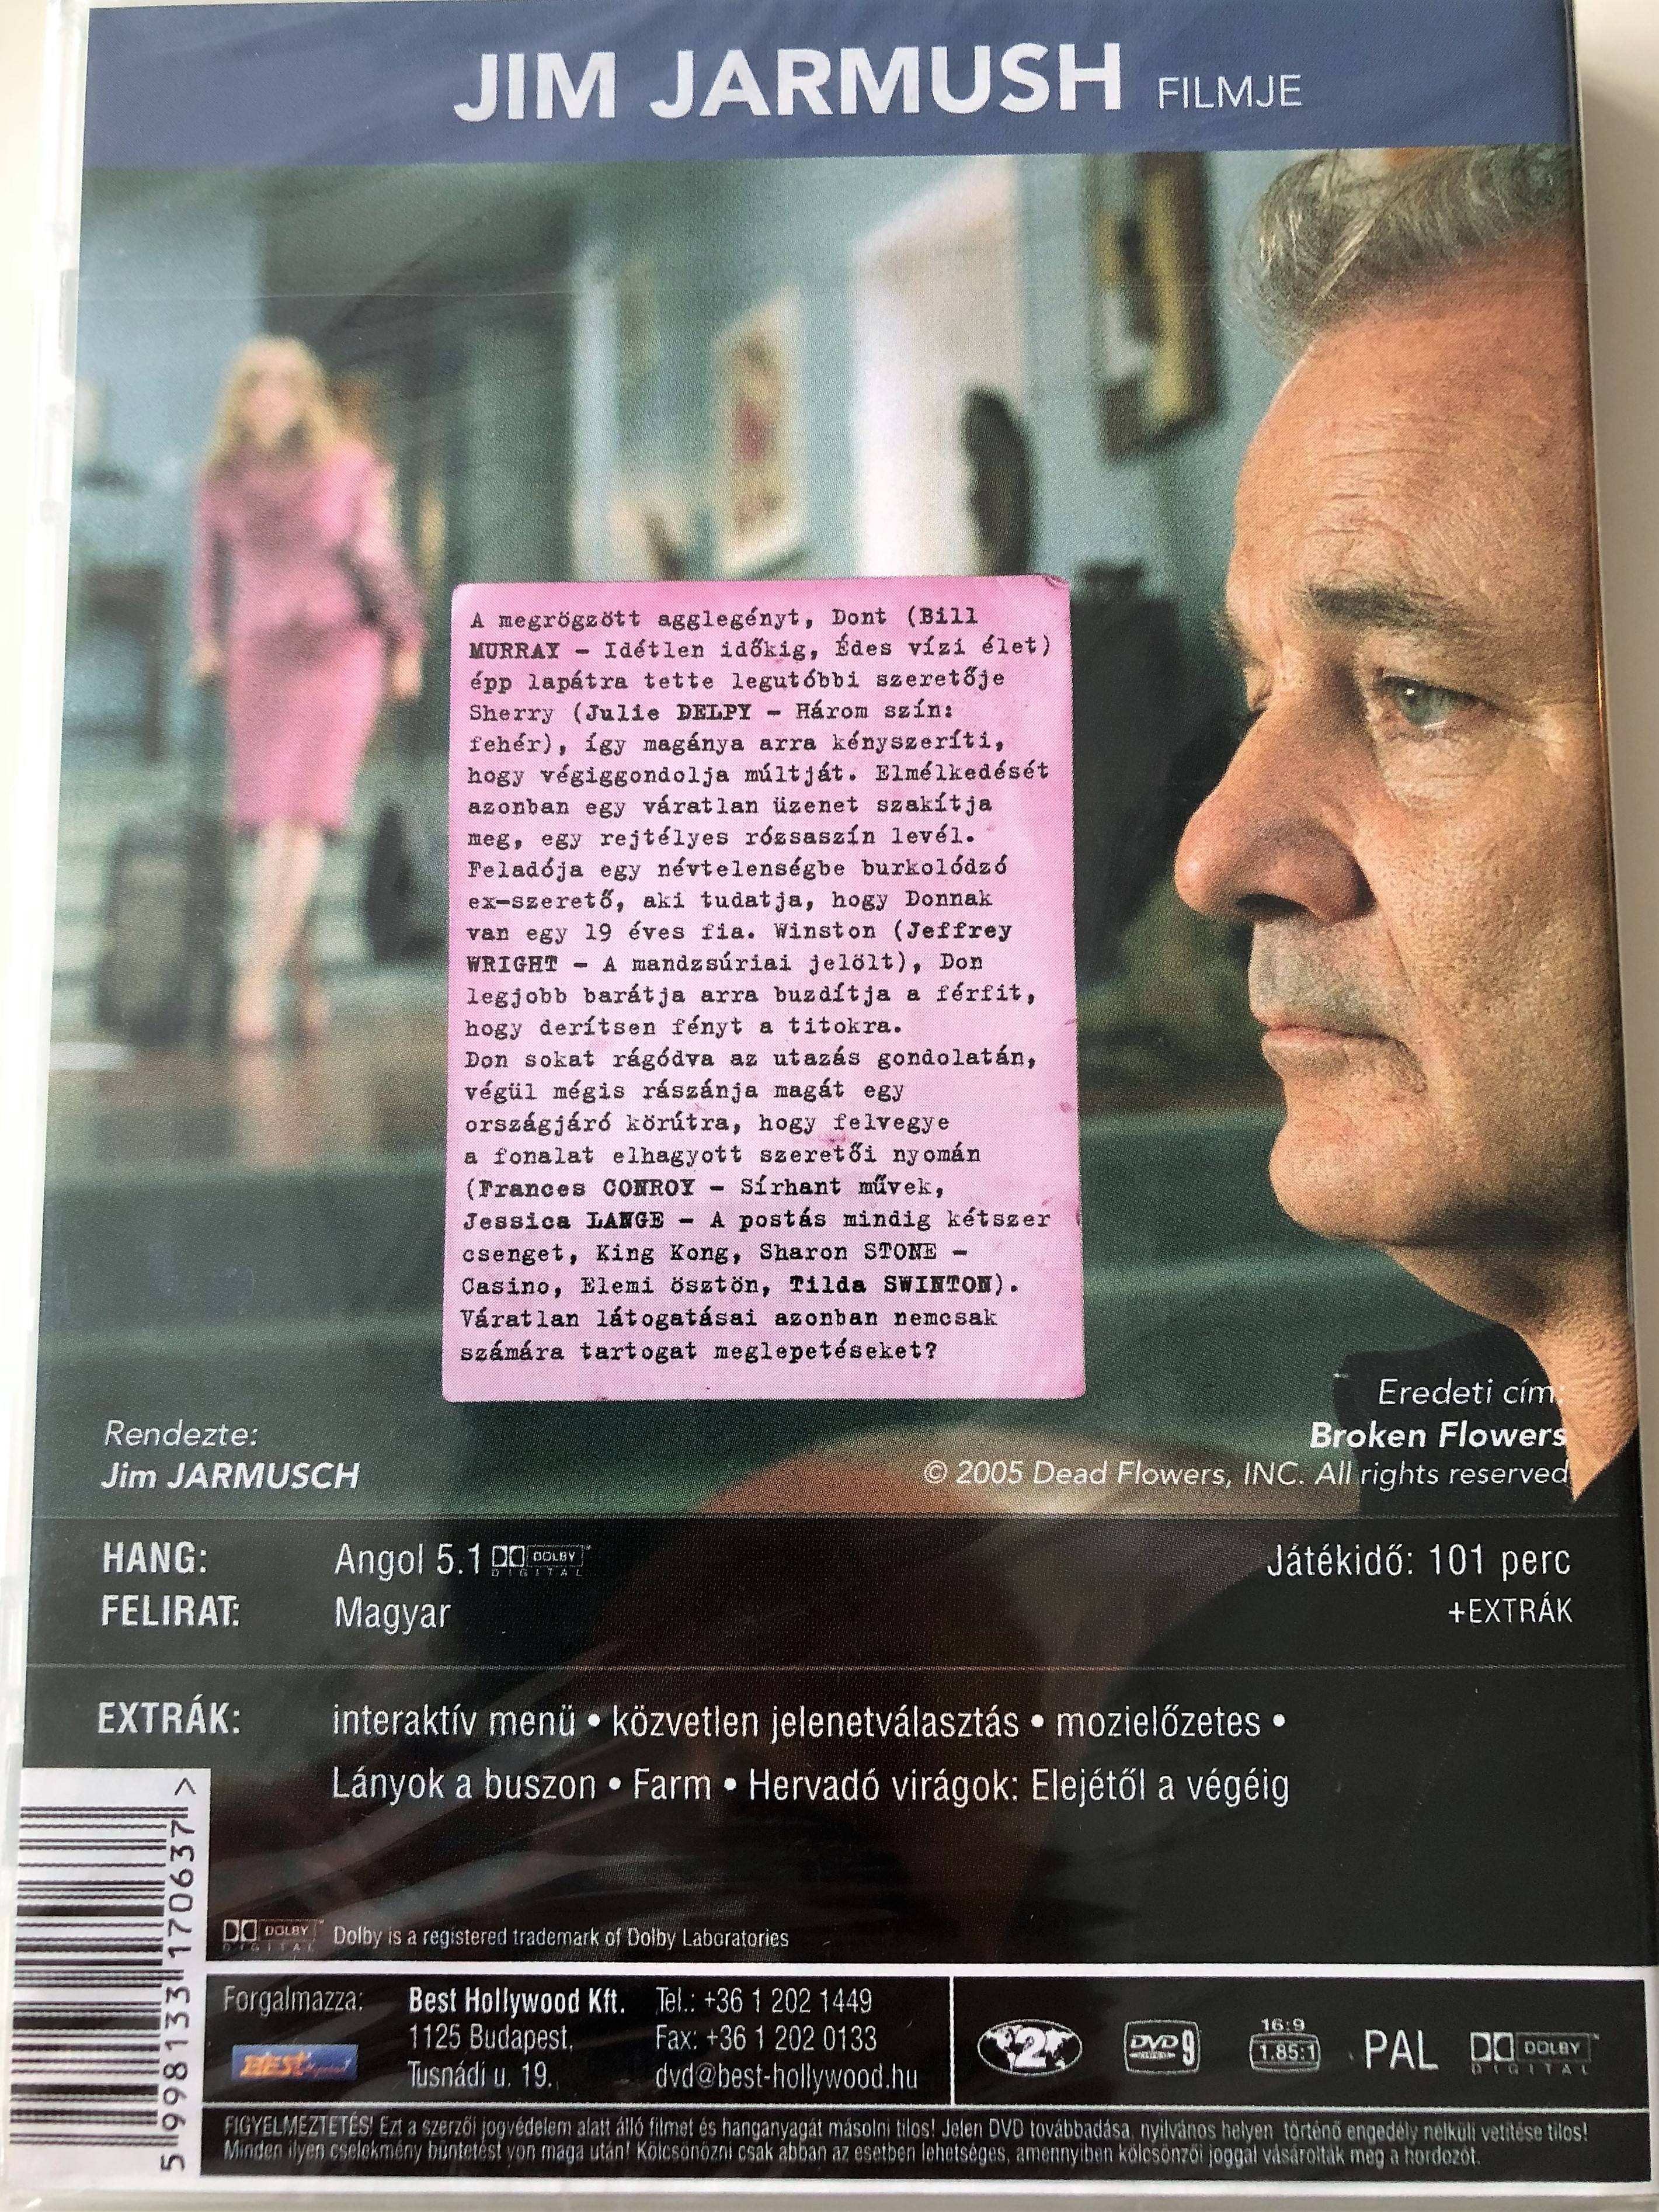 broken-flowers-dvd-2005-hervad-vir-gok-directed-by-jim-jarmush-starring-bill-murray-jeffrey-wright-sharon-stone-frances-conroy-jessica-lange-tilda-swinton-julie-delpy-mark-webber-chlo-sevigny-2-.jpg